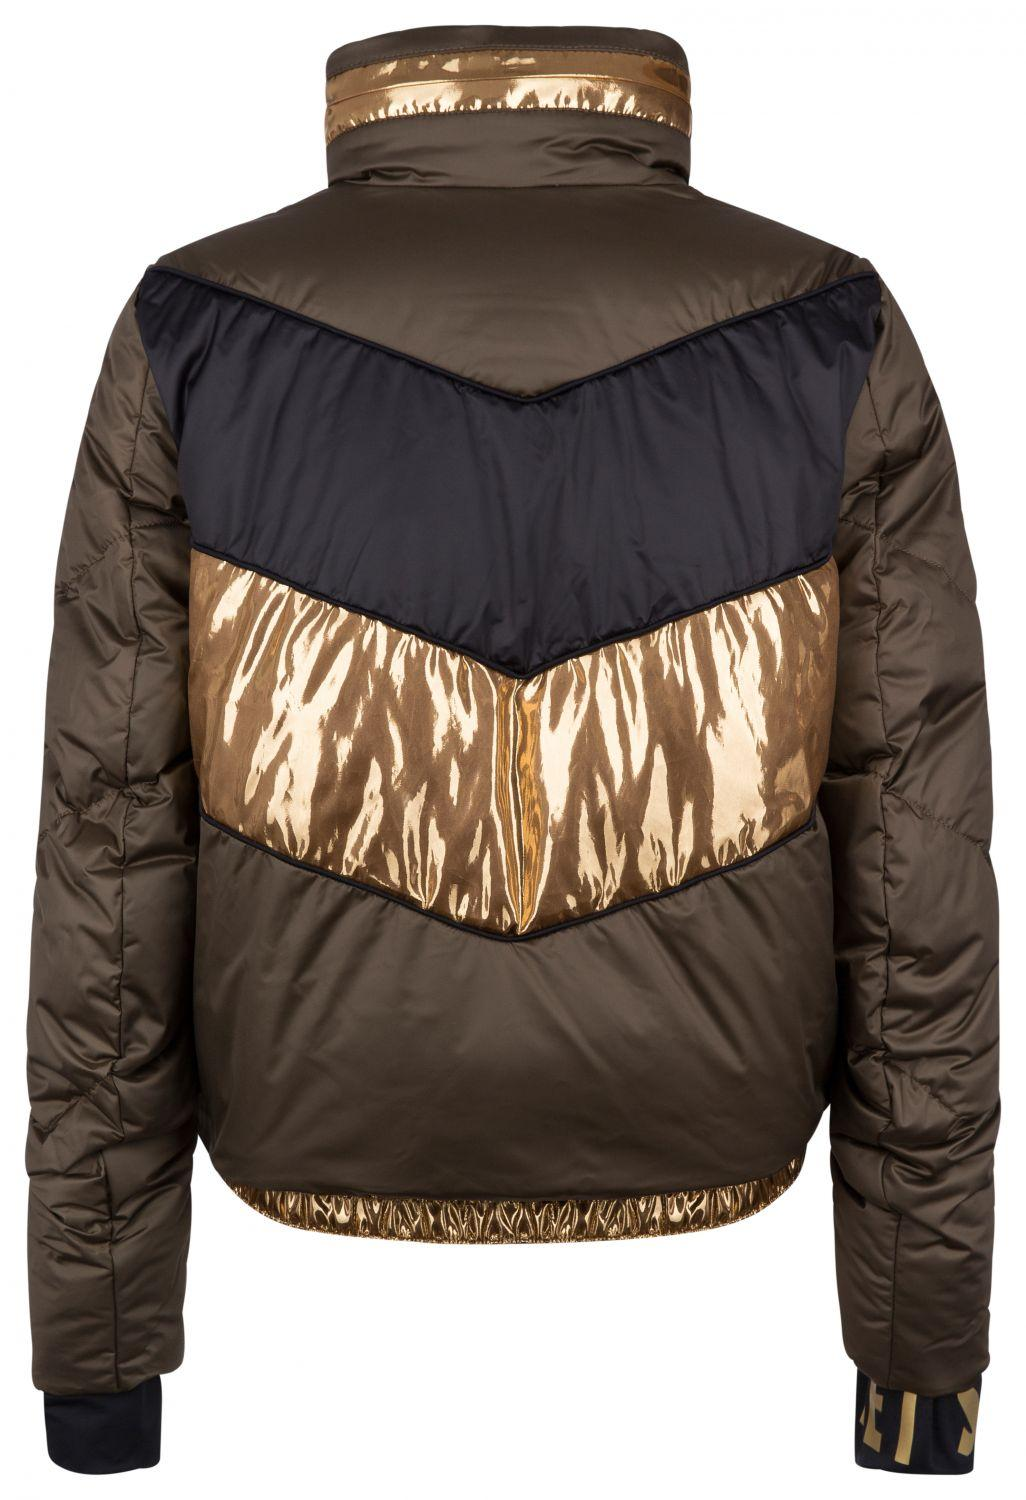 "Jet Set Damen Skijacke ""Harper Chic"" Army Gold 2"